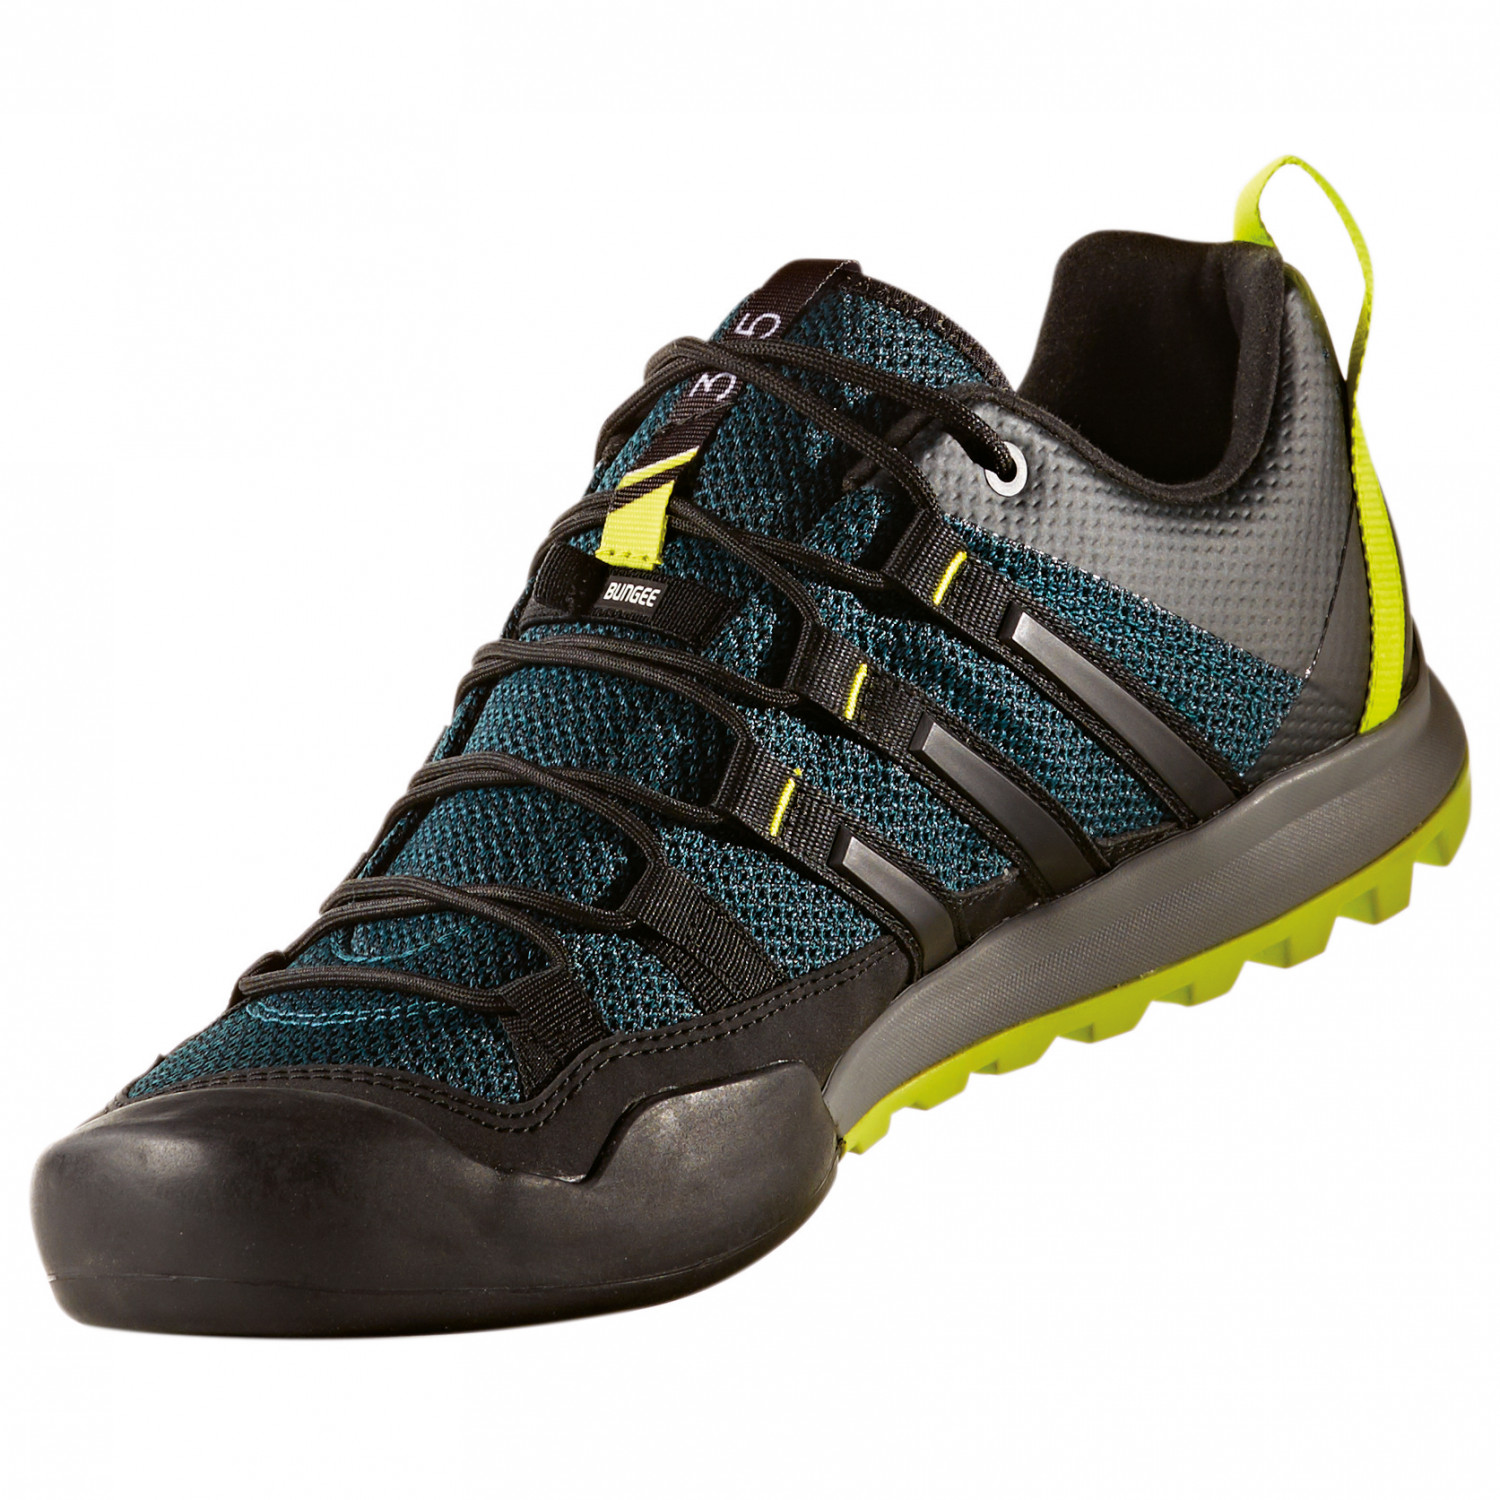 adidas Terrex Solo Chaussures d'approche